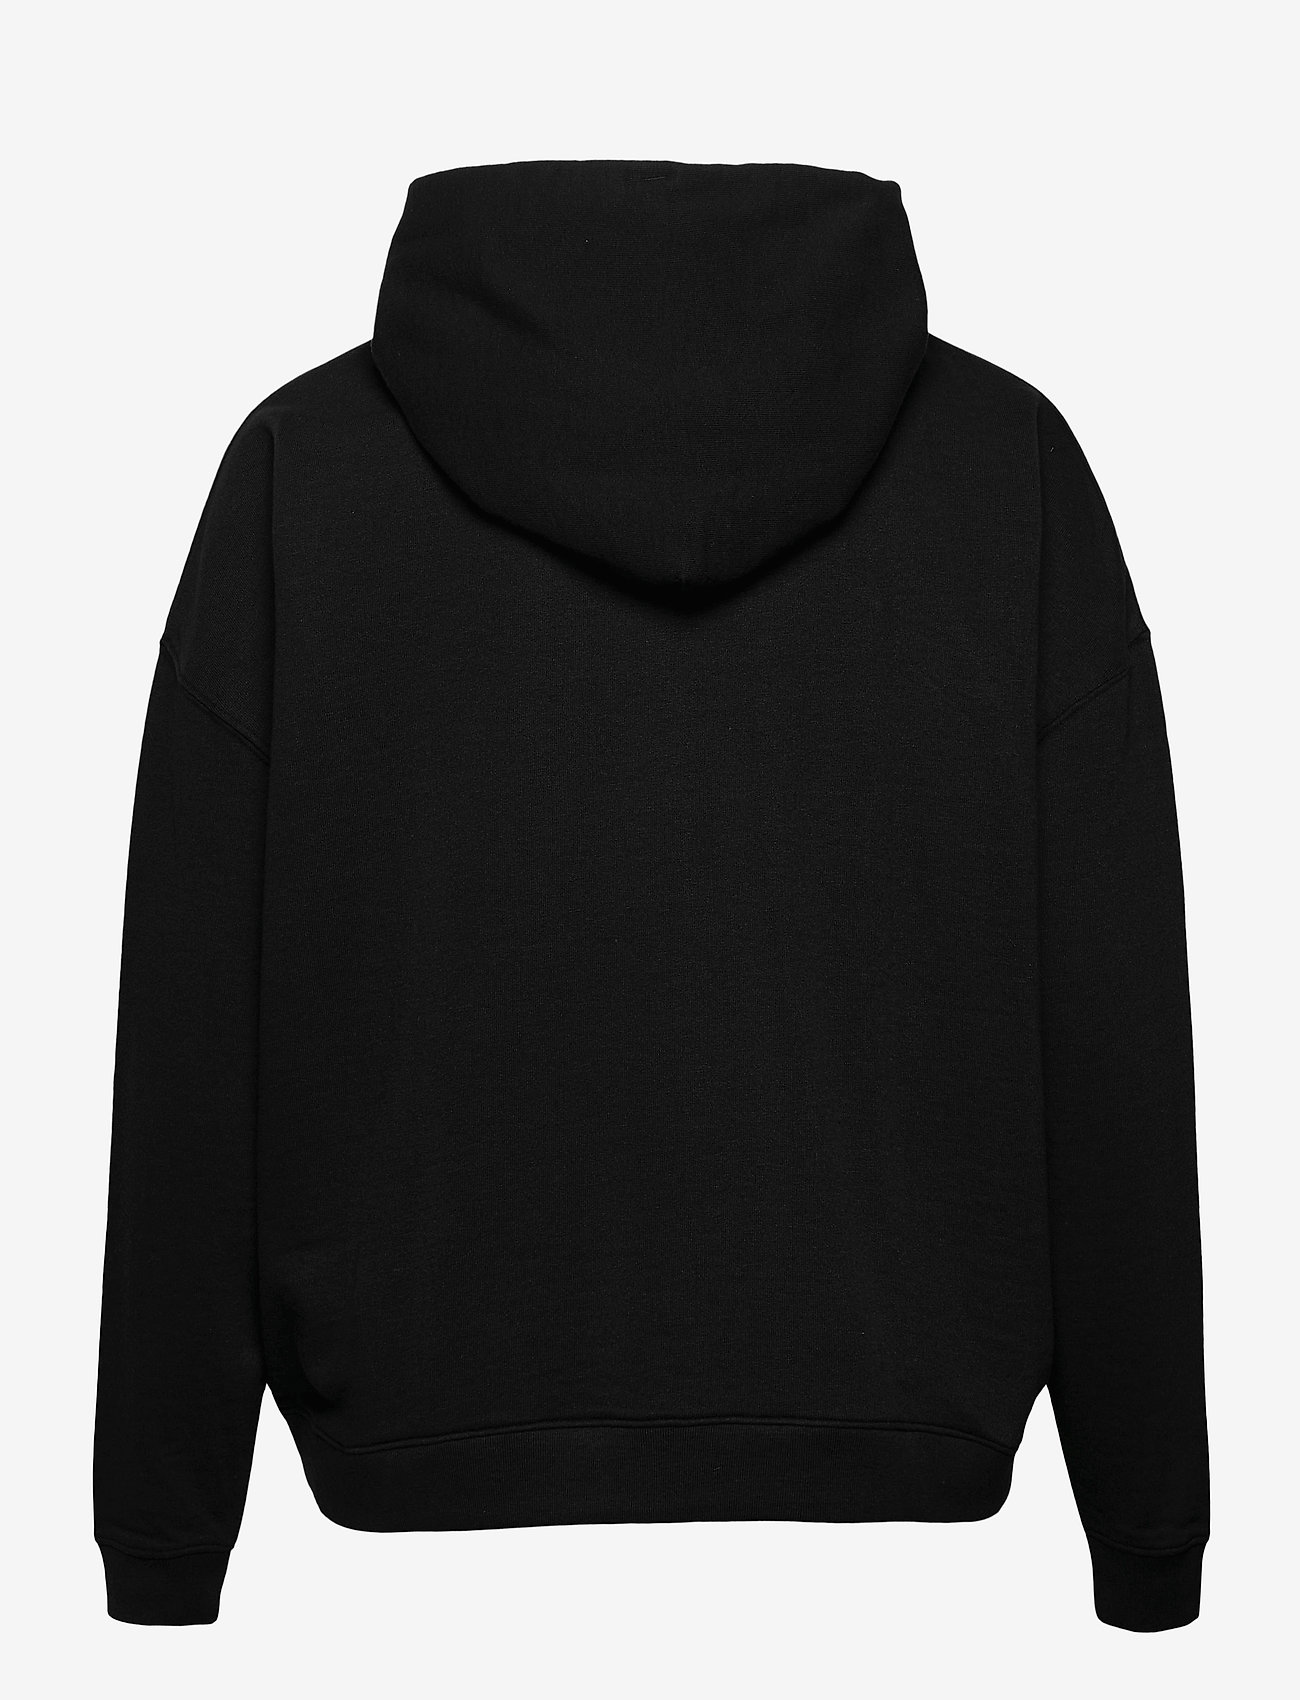 Levi's Plus Size - PL GRAPHIC STRD HOODIE PL HOOD - sweatshirts & hoodies - blacks - 1